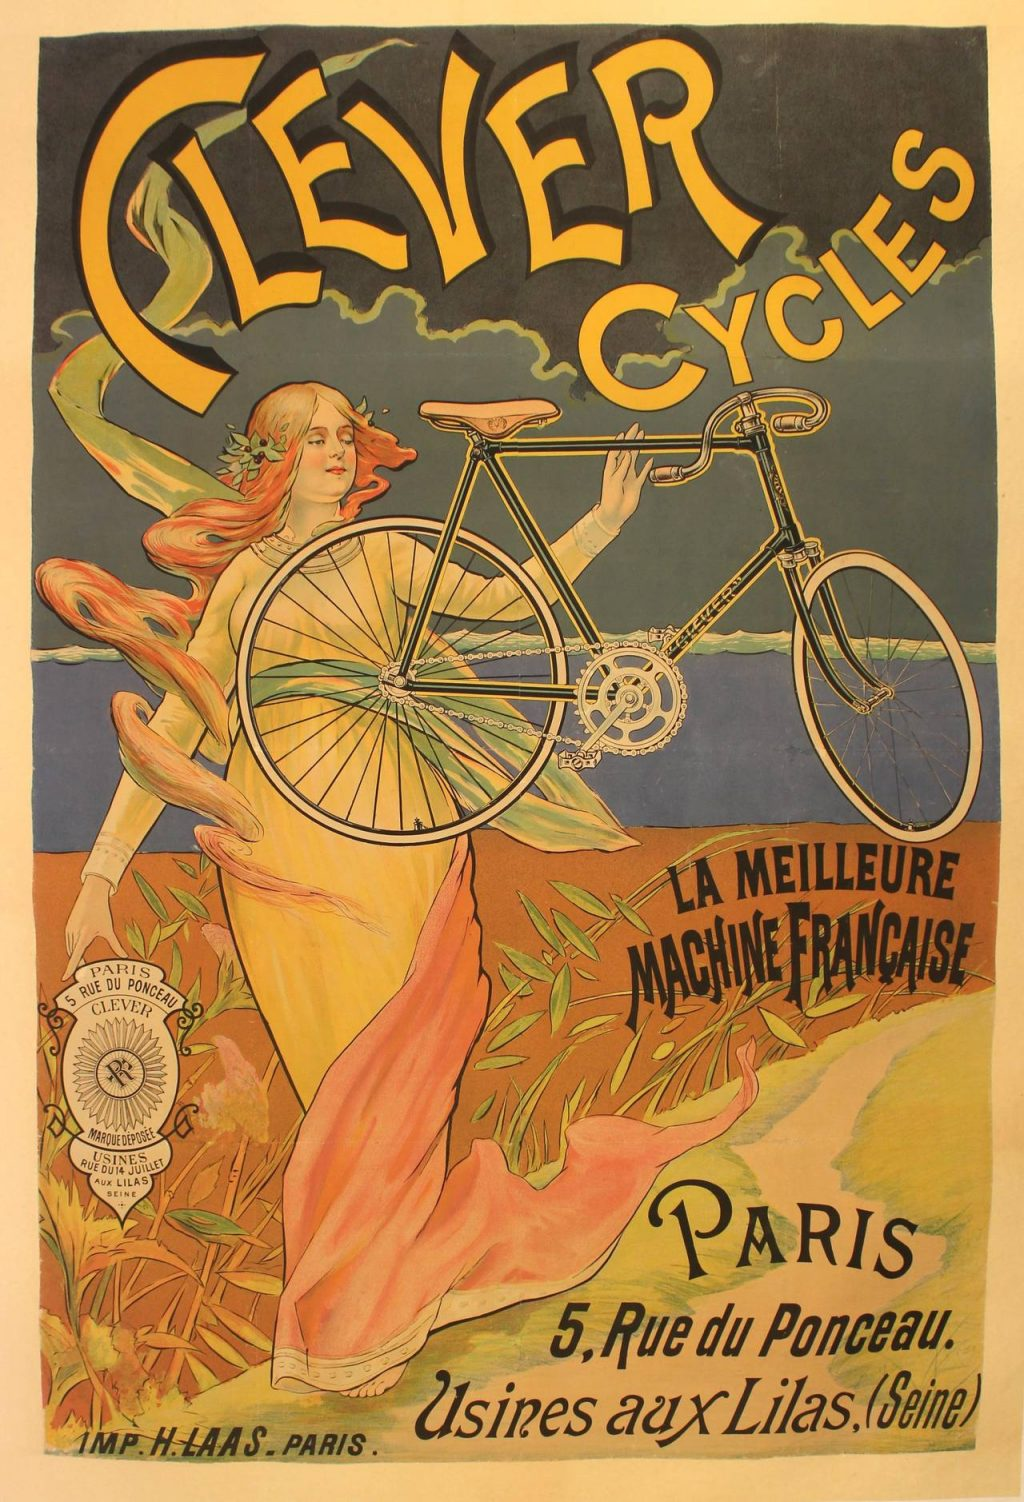 Prints En Posters The Influence Of Art History On Modern Design Art Nouveau